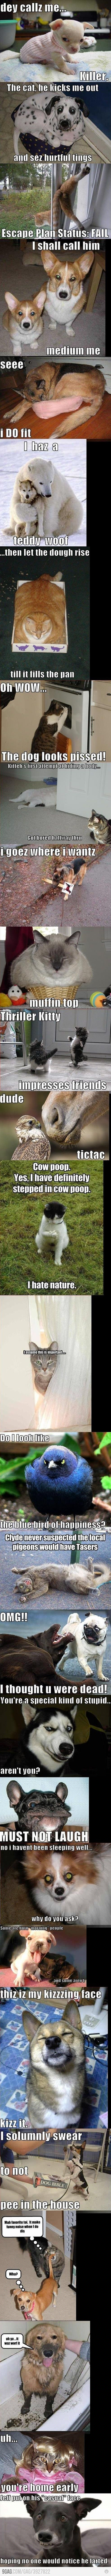 Cute Animals saying funny things